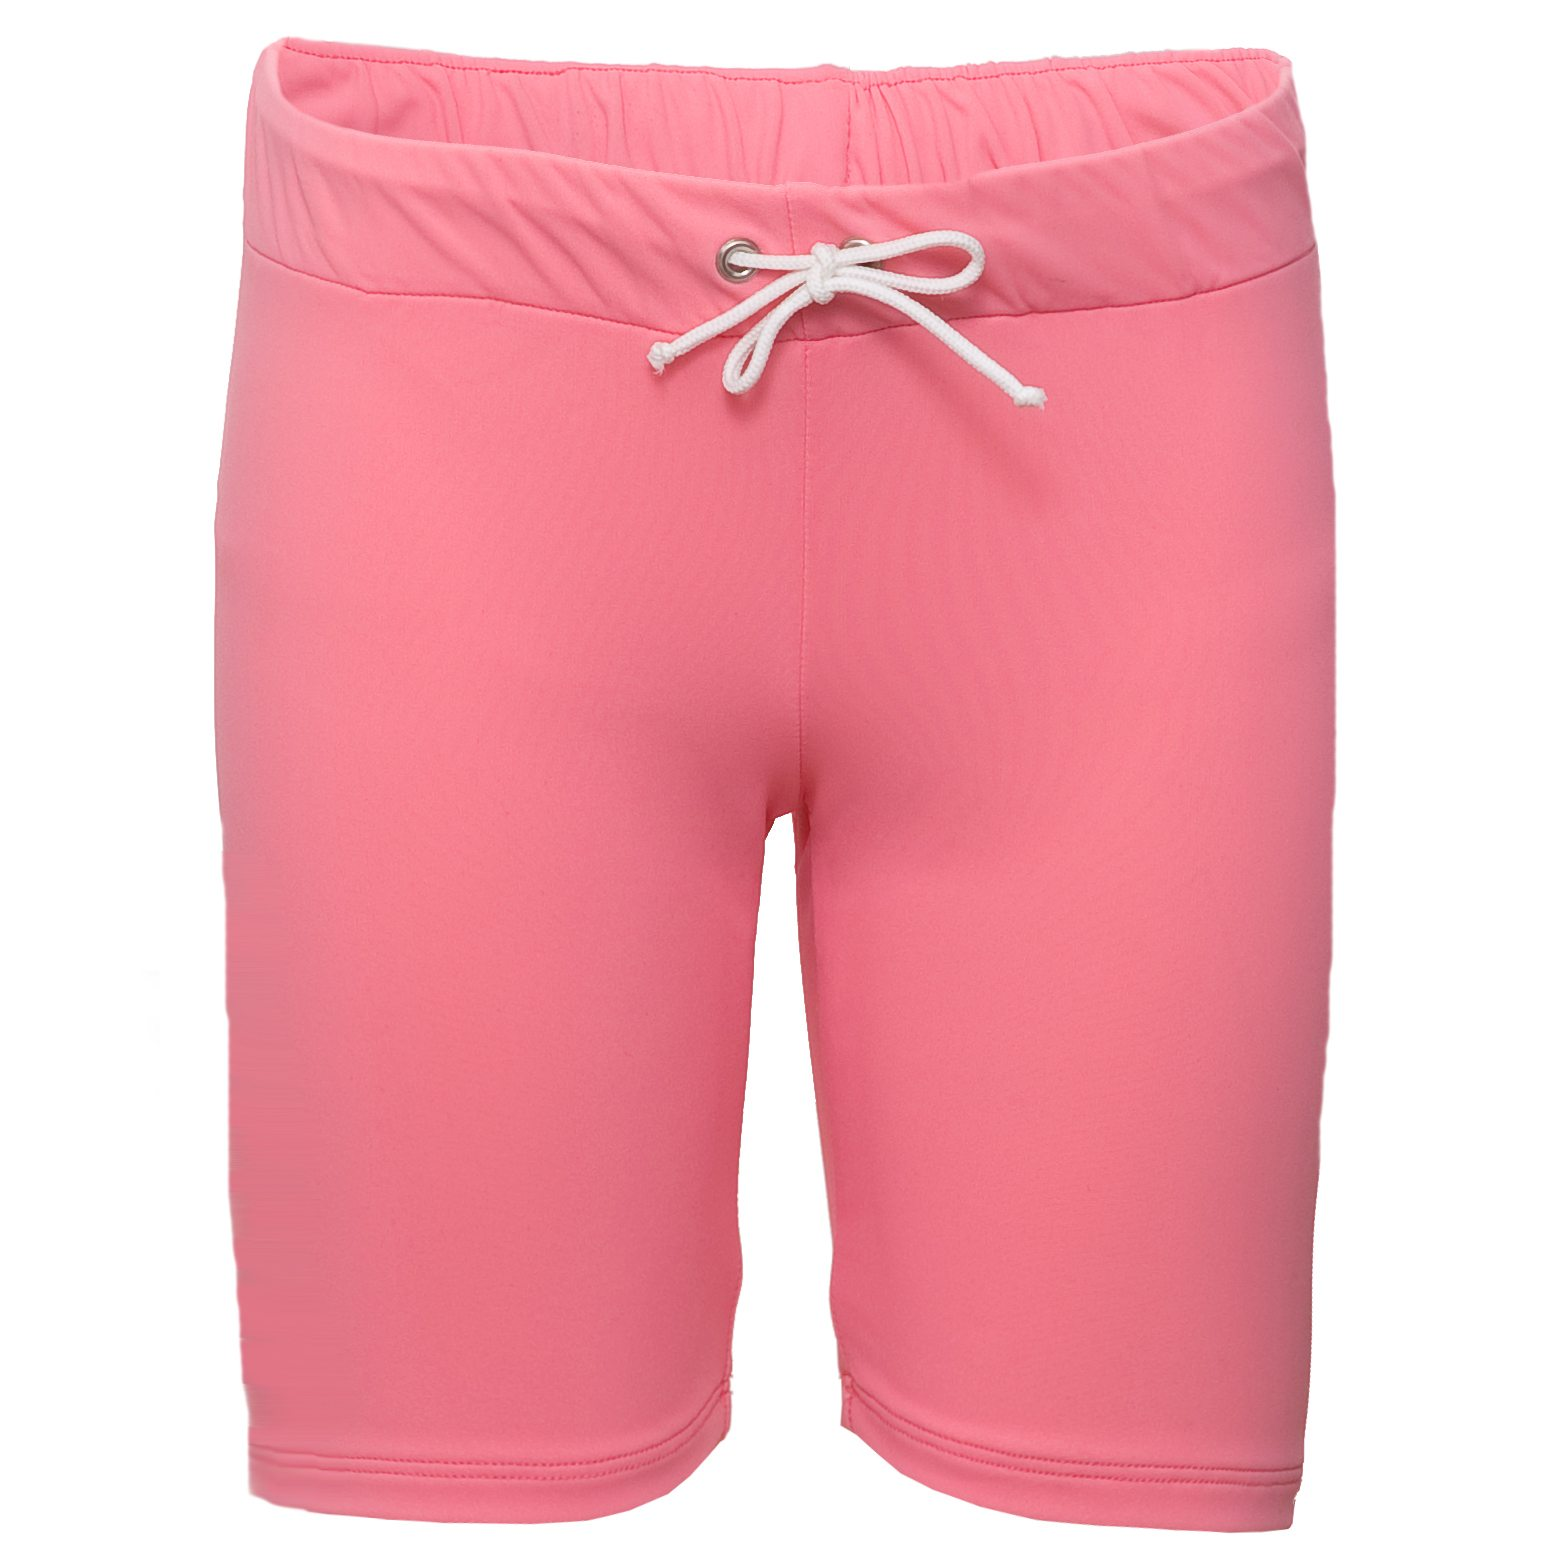 Petit Crabe pink watermelon Alex swimshorts for girls. UV sun protective swimwear for children.